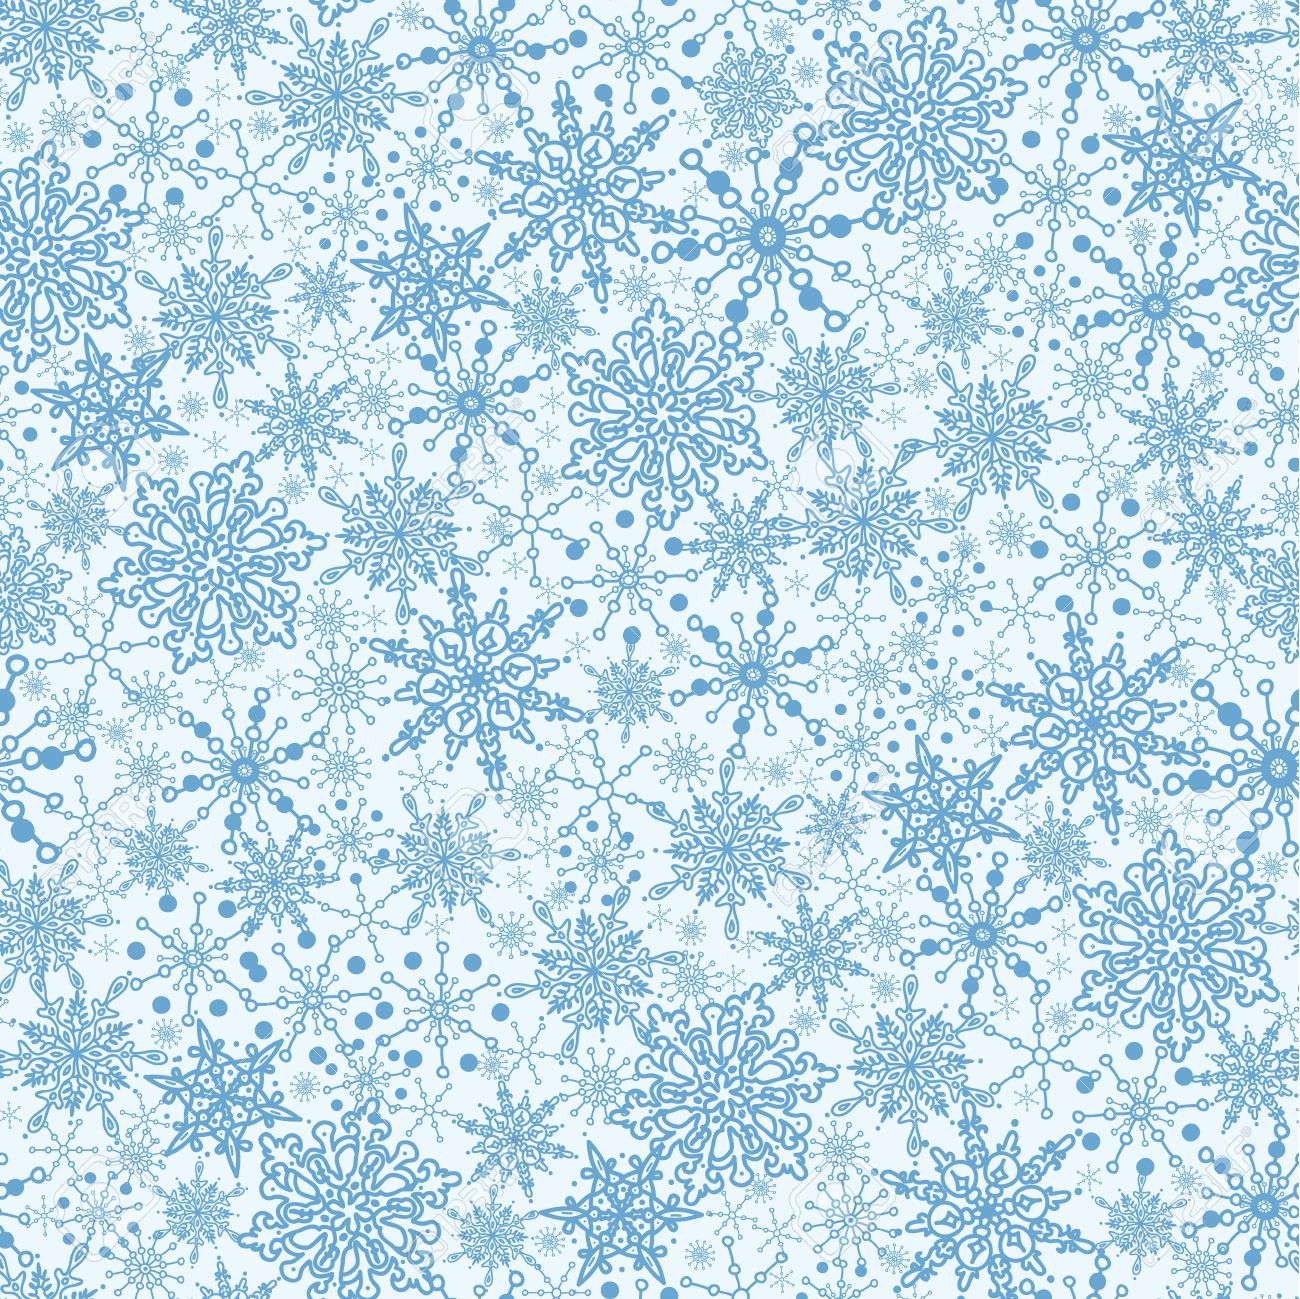 Snowflake Texture Seamless Pattern Background Stock Vector - 16446376